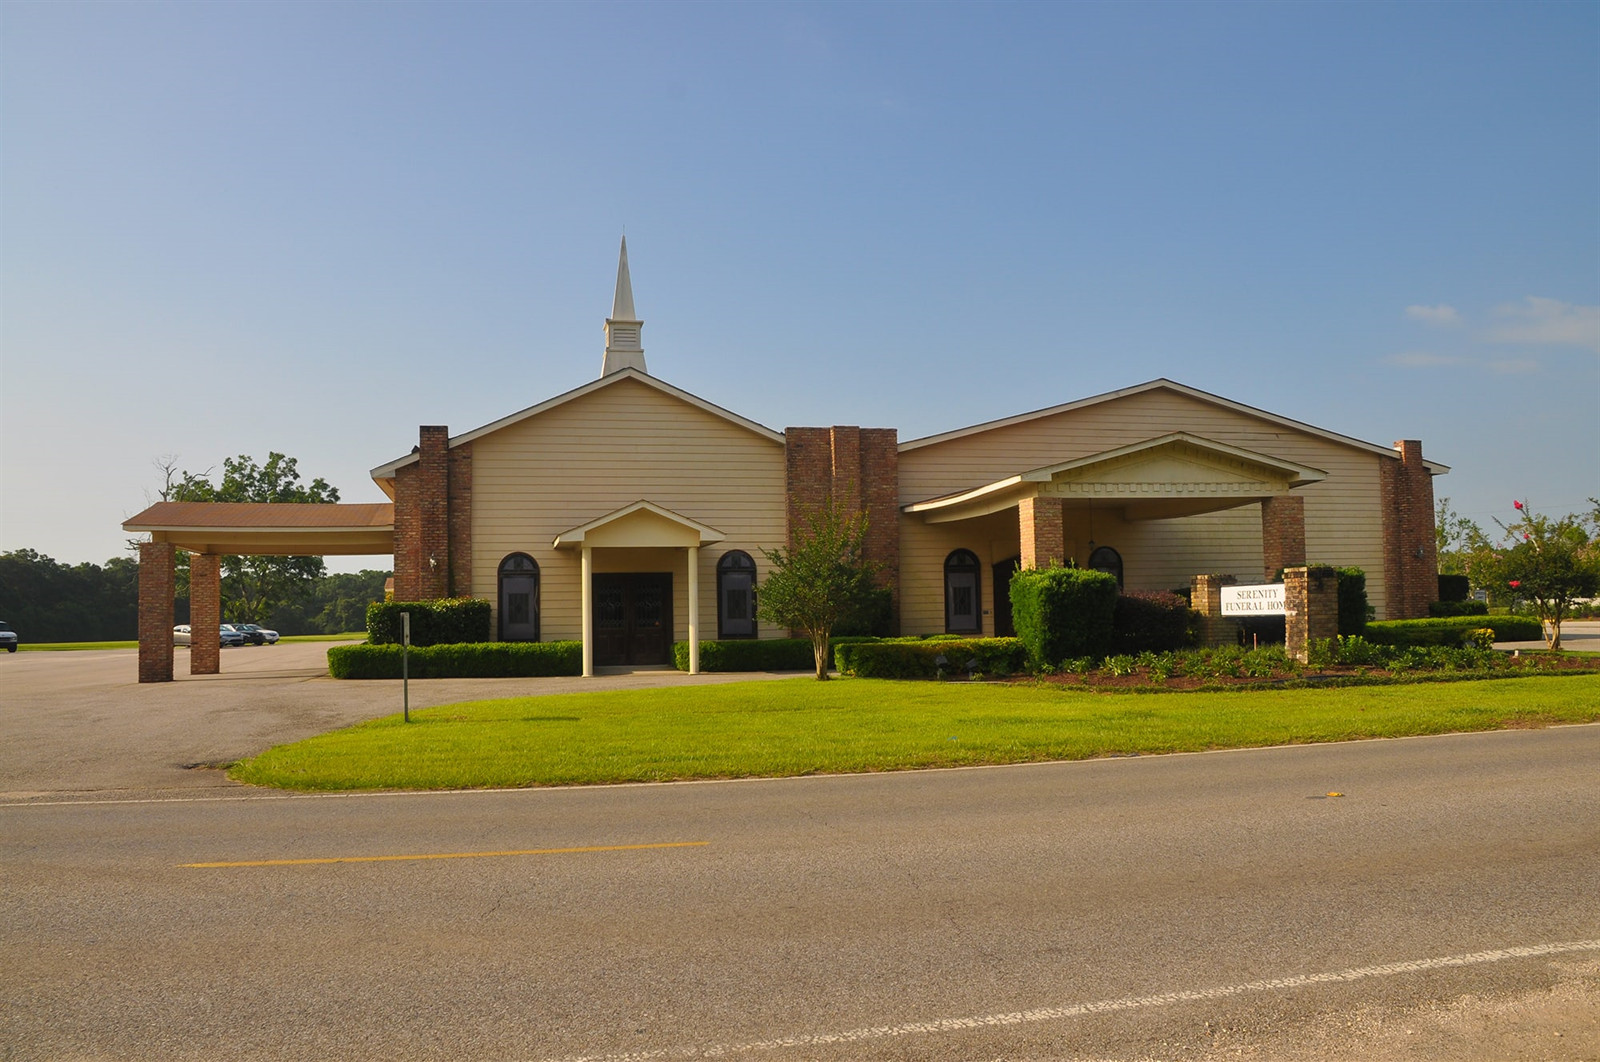 Tour our Grounds | Serenity Funeral Home Theodore, AL